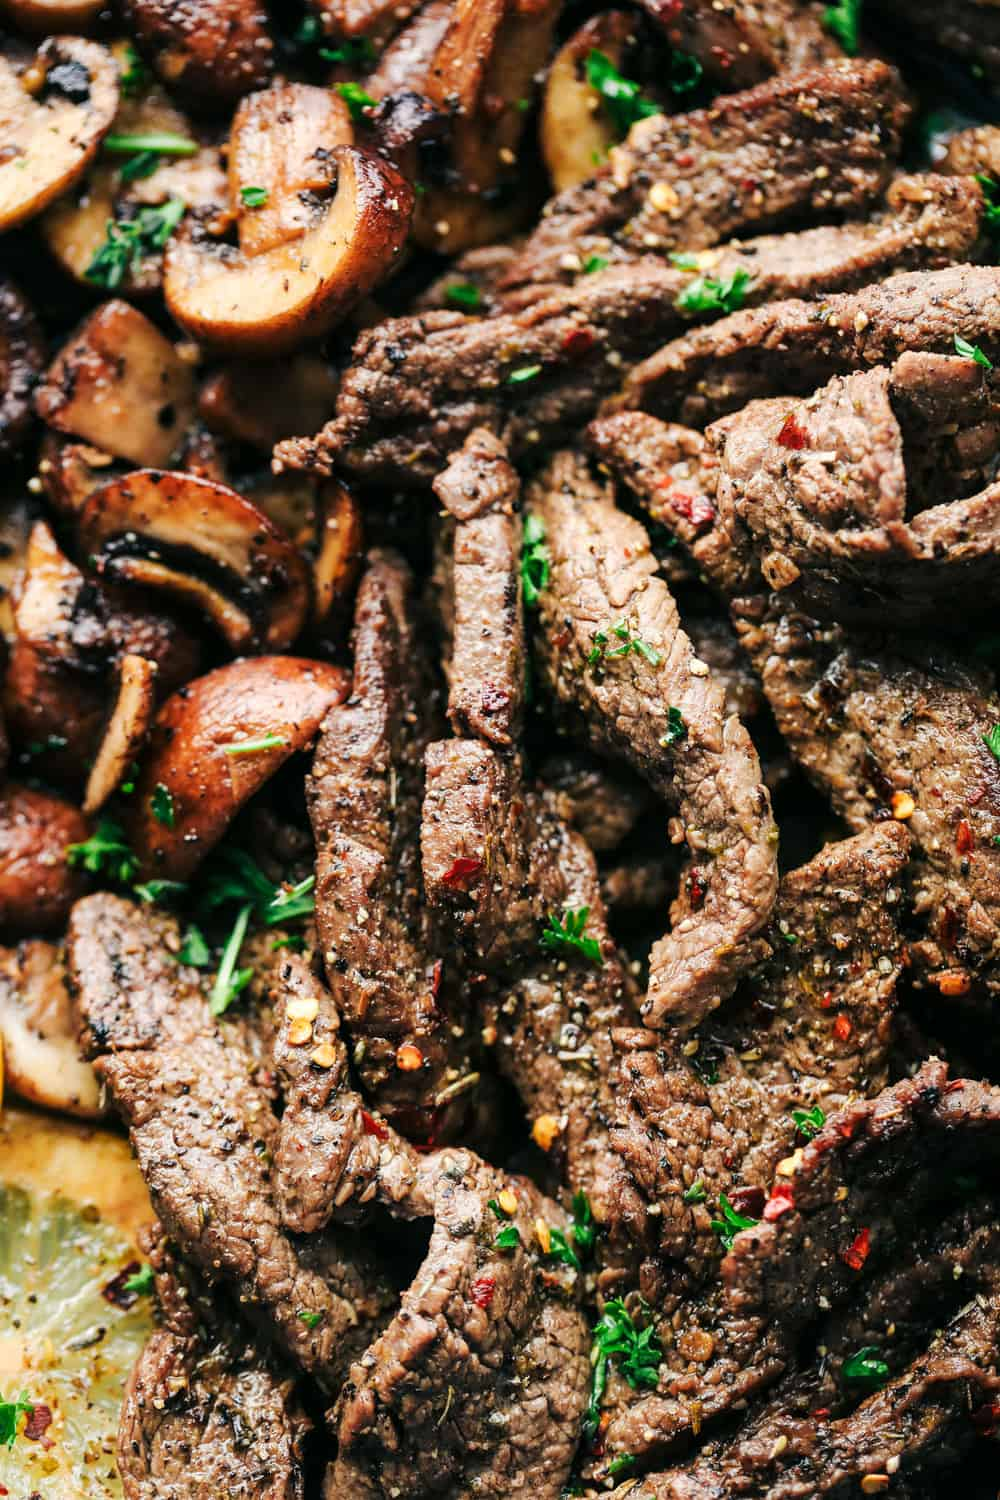 lemon garlic butter flank steak with mushrooms